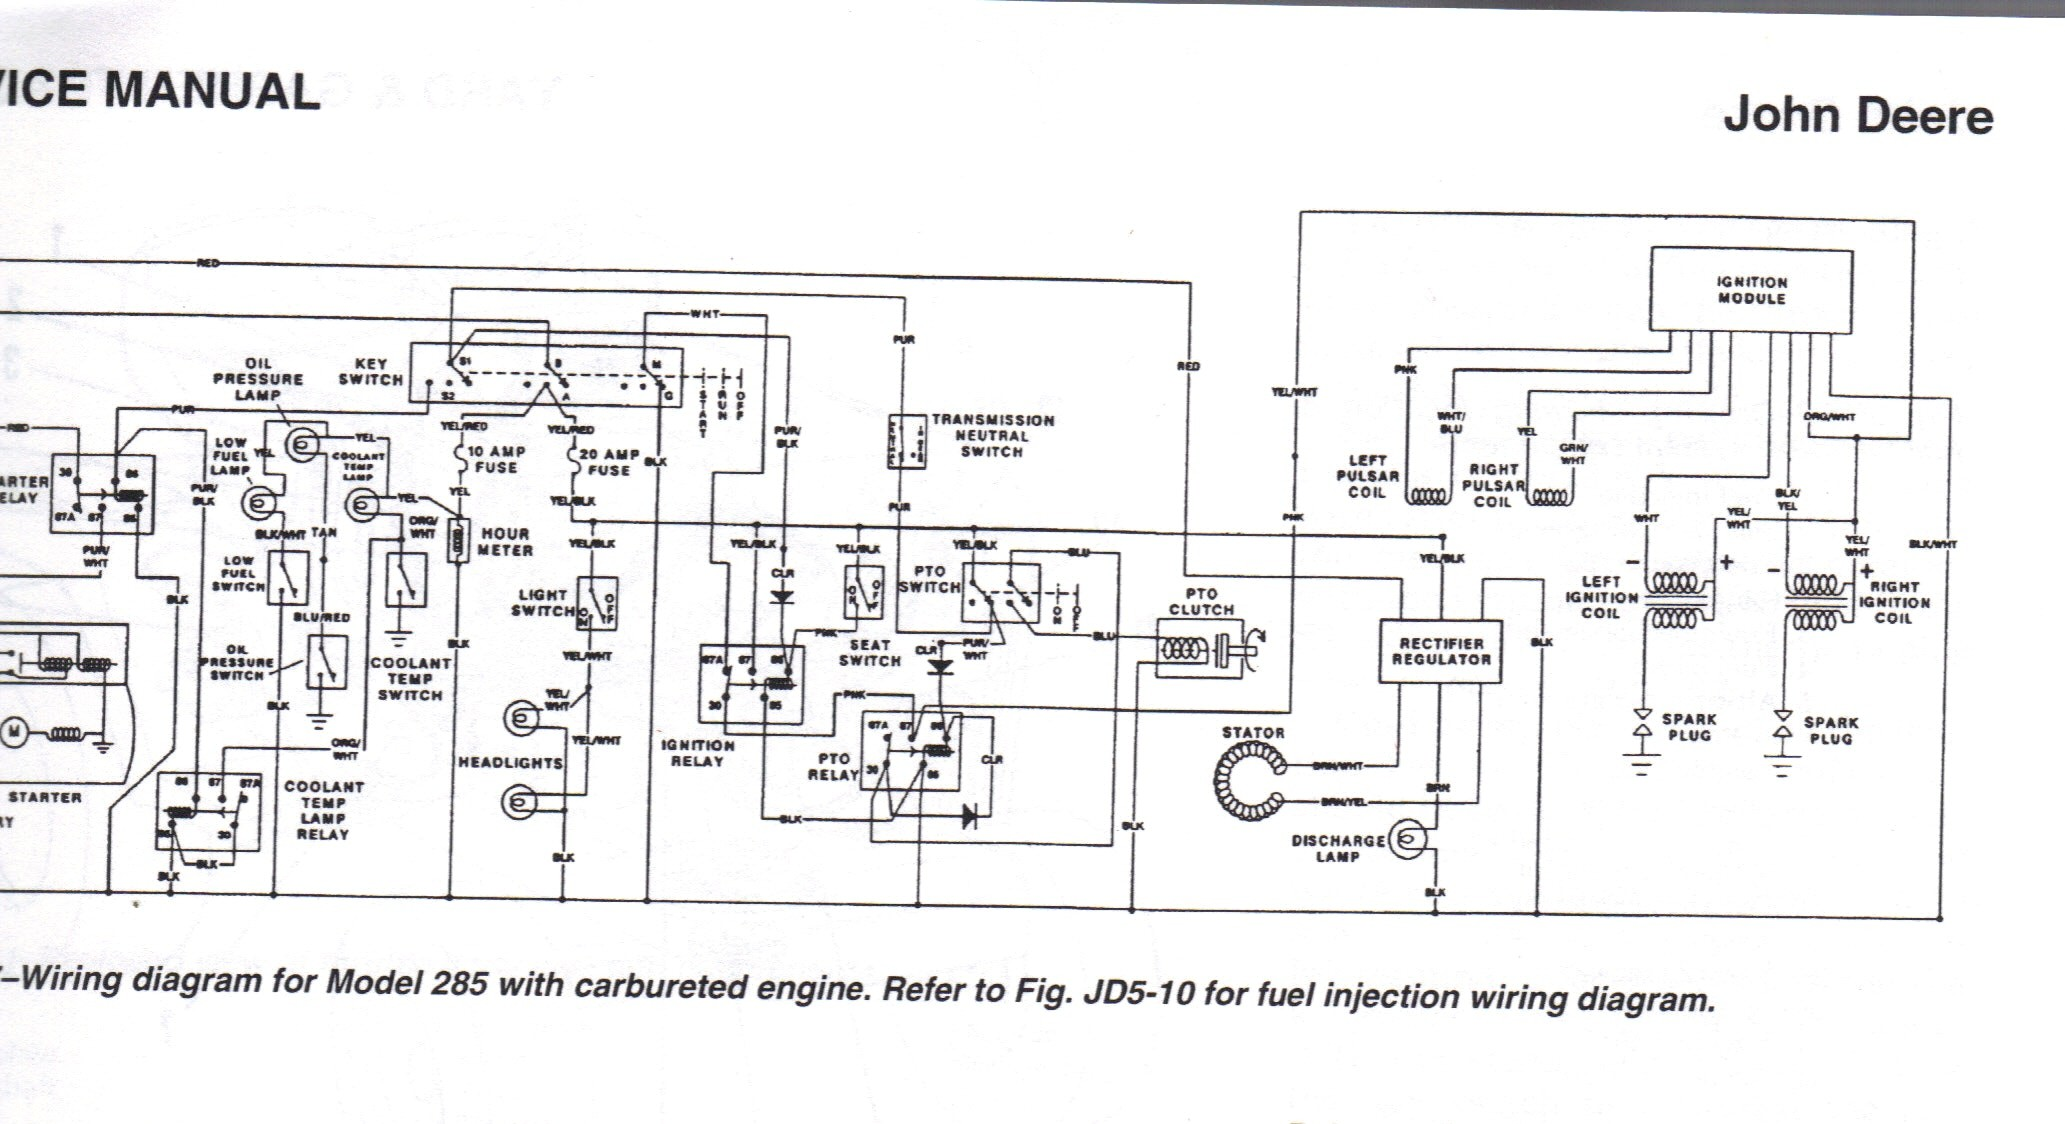 Lt155 Wiring Harness : John deere wiring diagram my